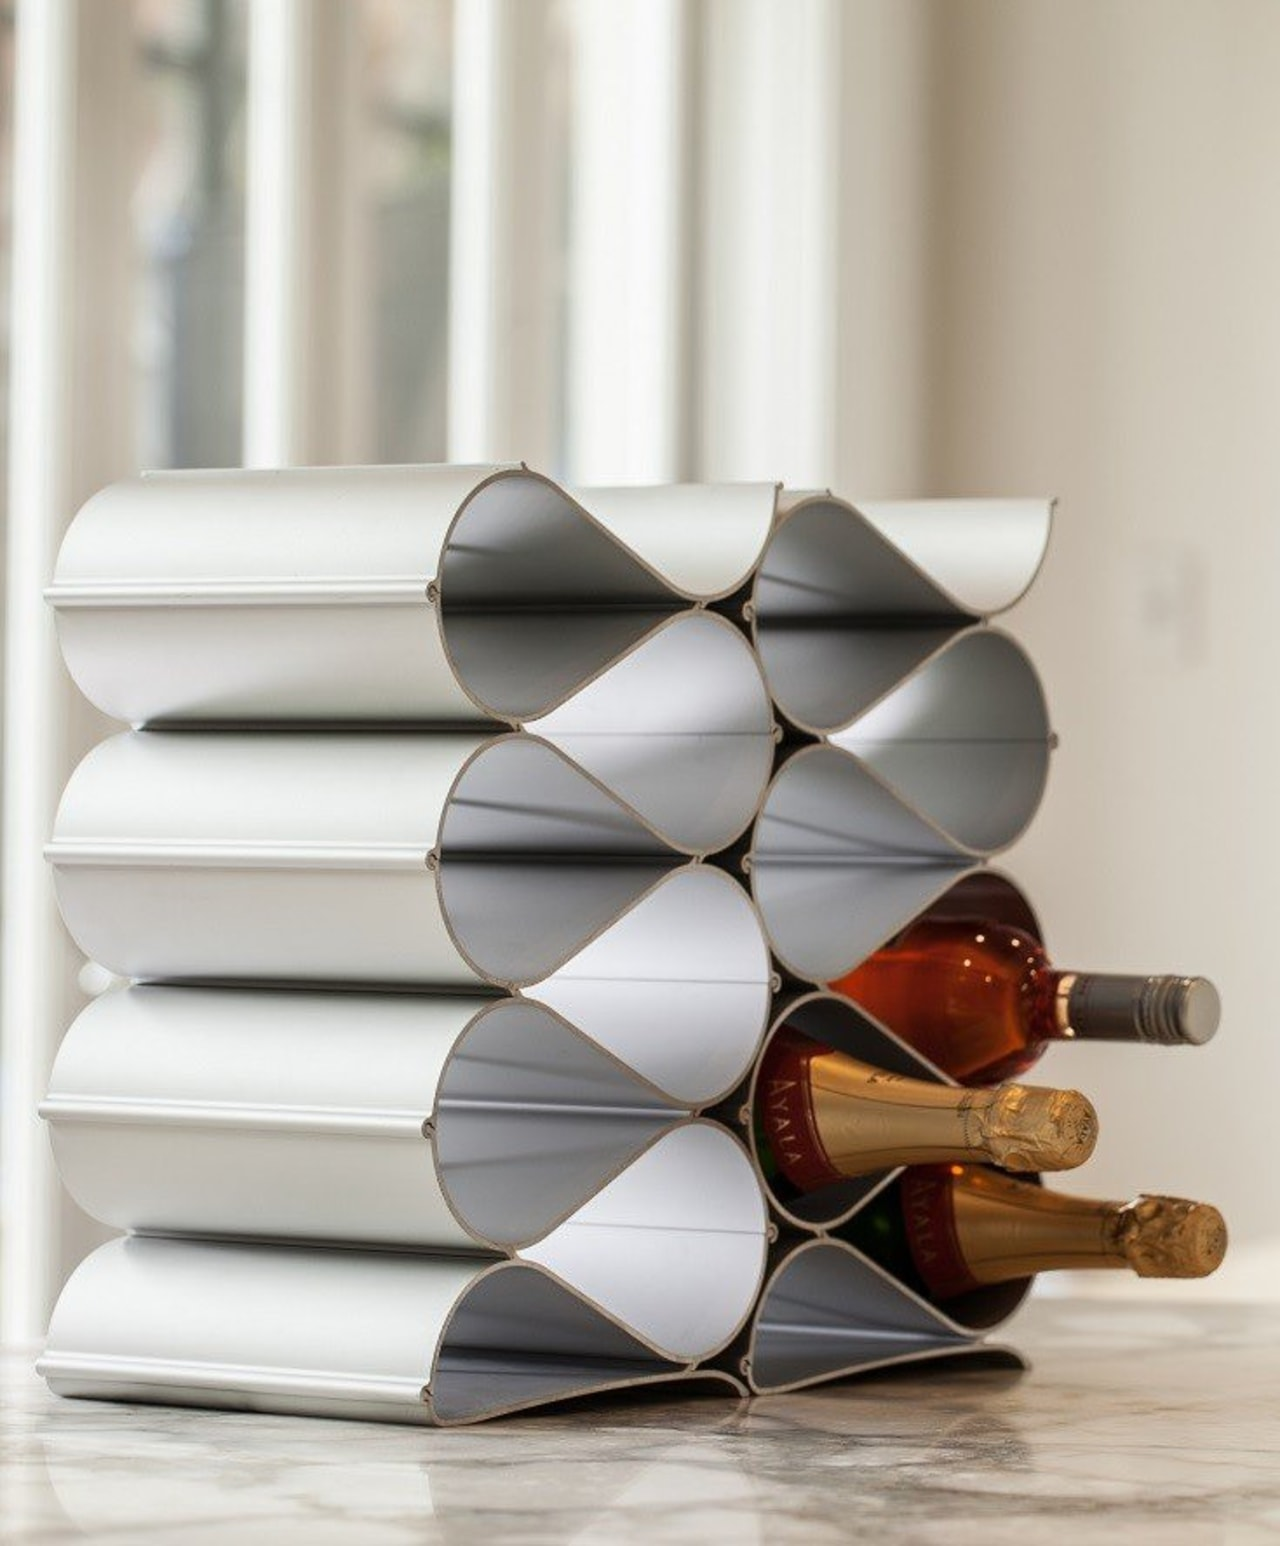 Just starting your wine collection? An Echelon 6 furniture, product design, shelf, gray, white